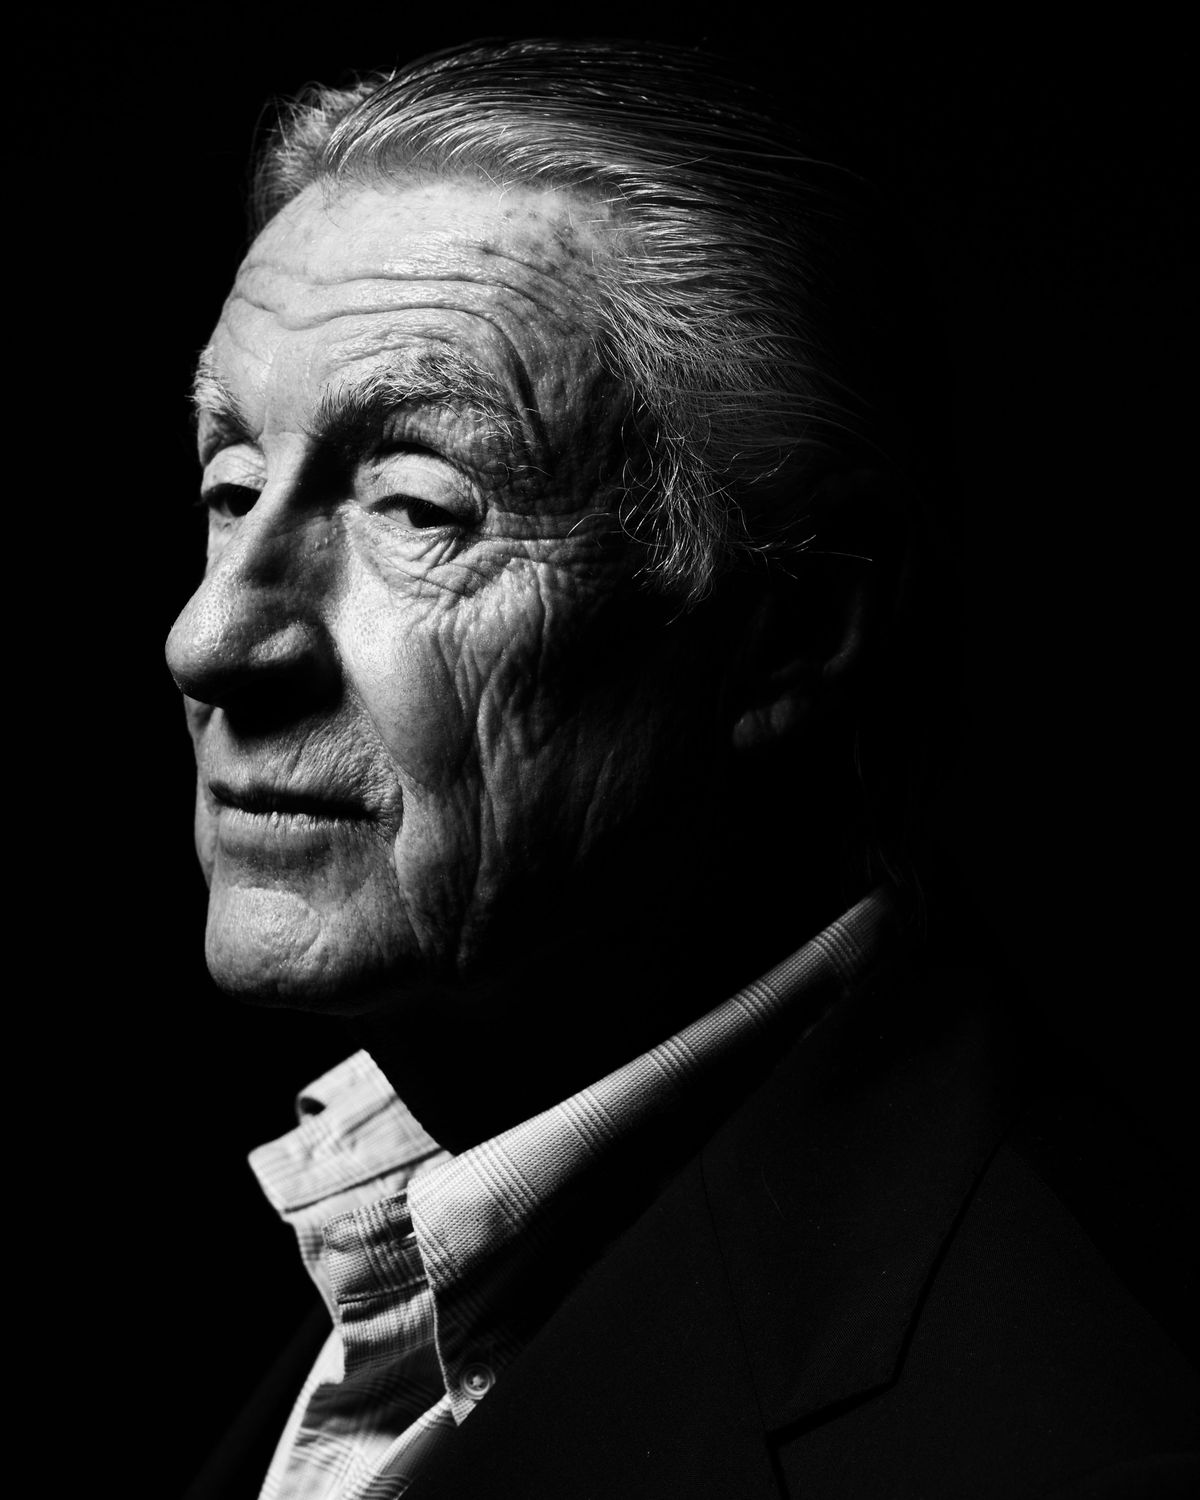 Joel Schumacher passed away today.